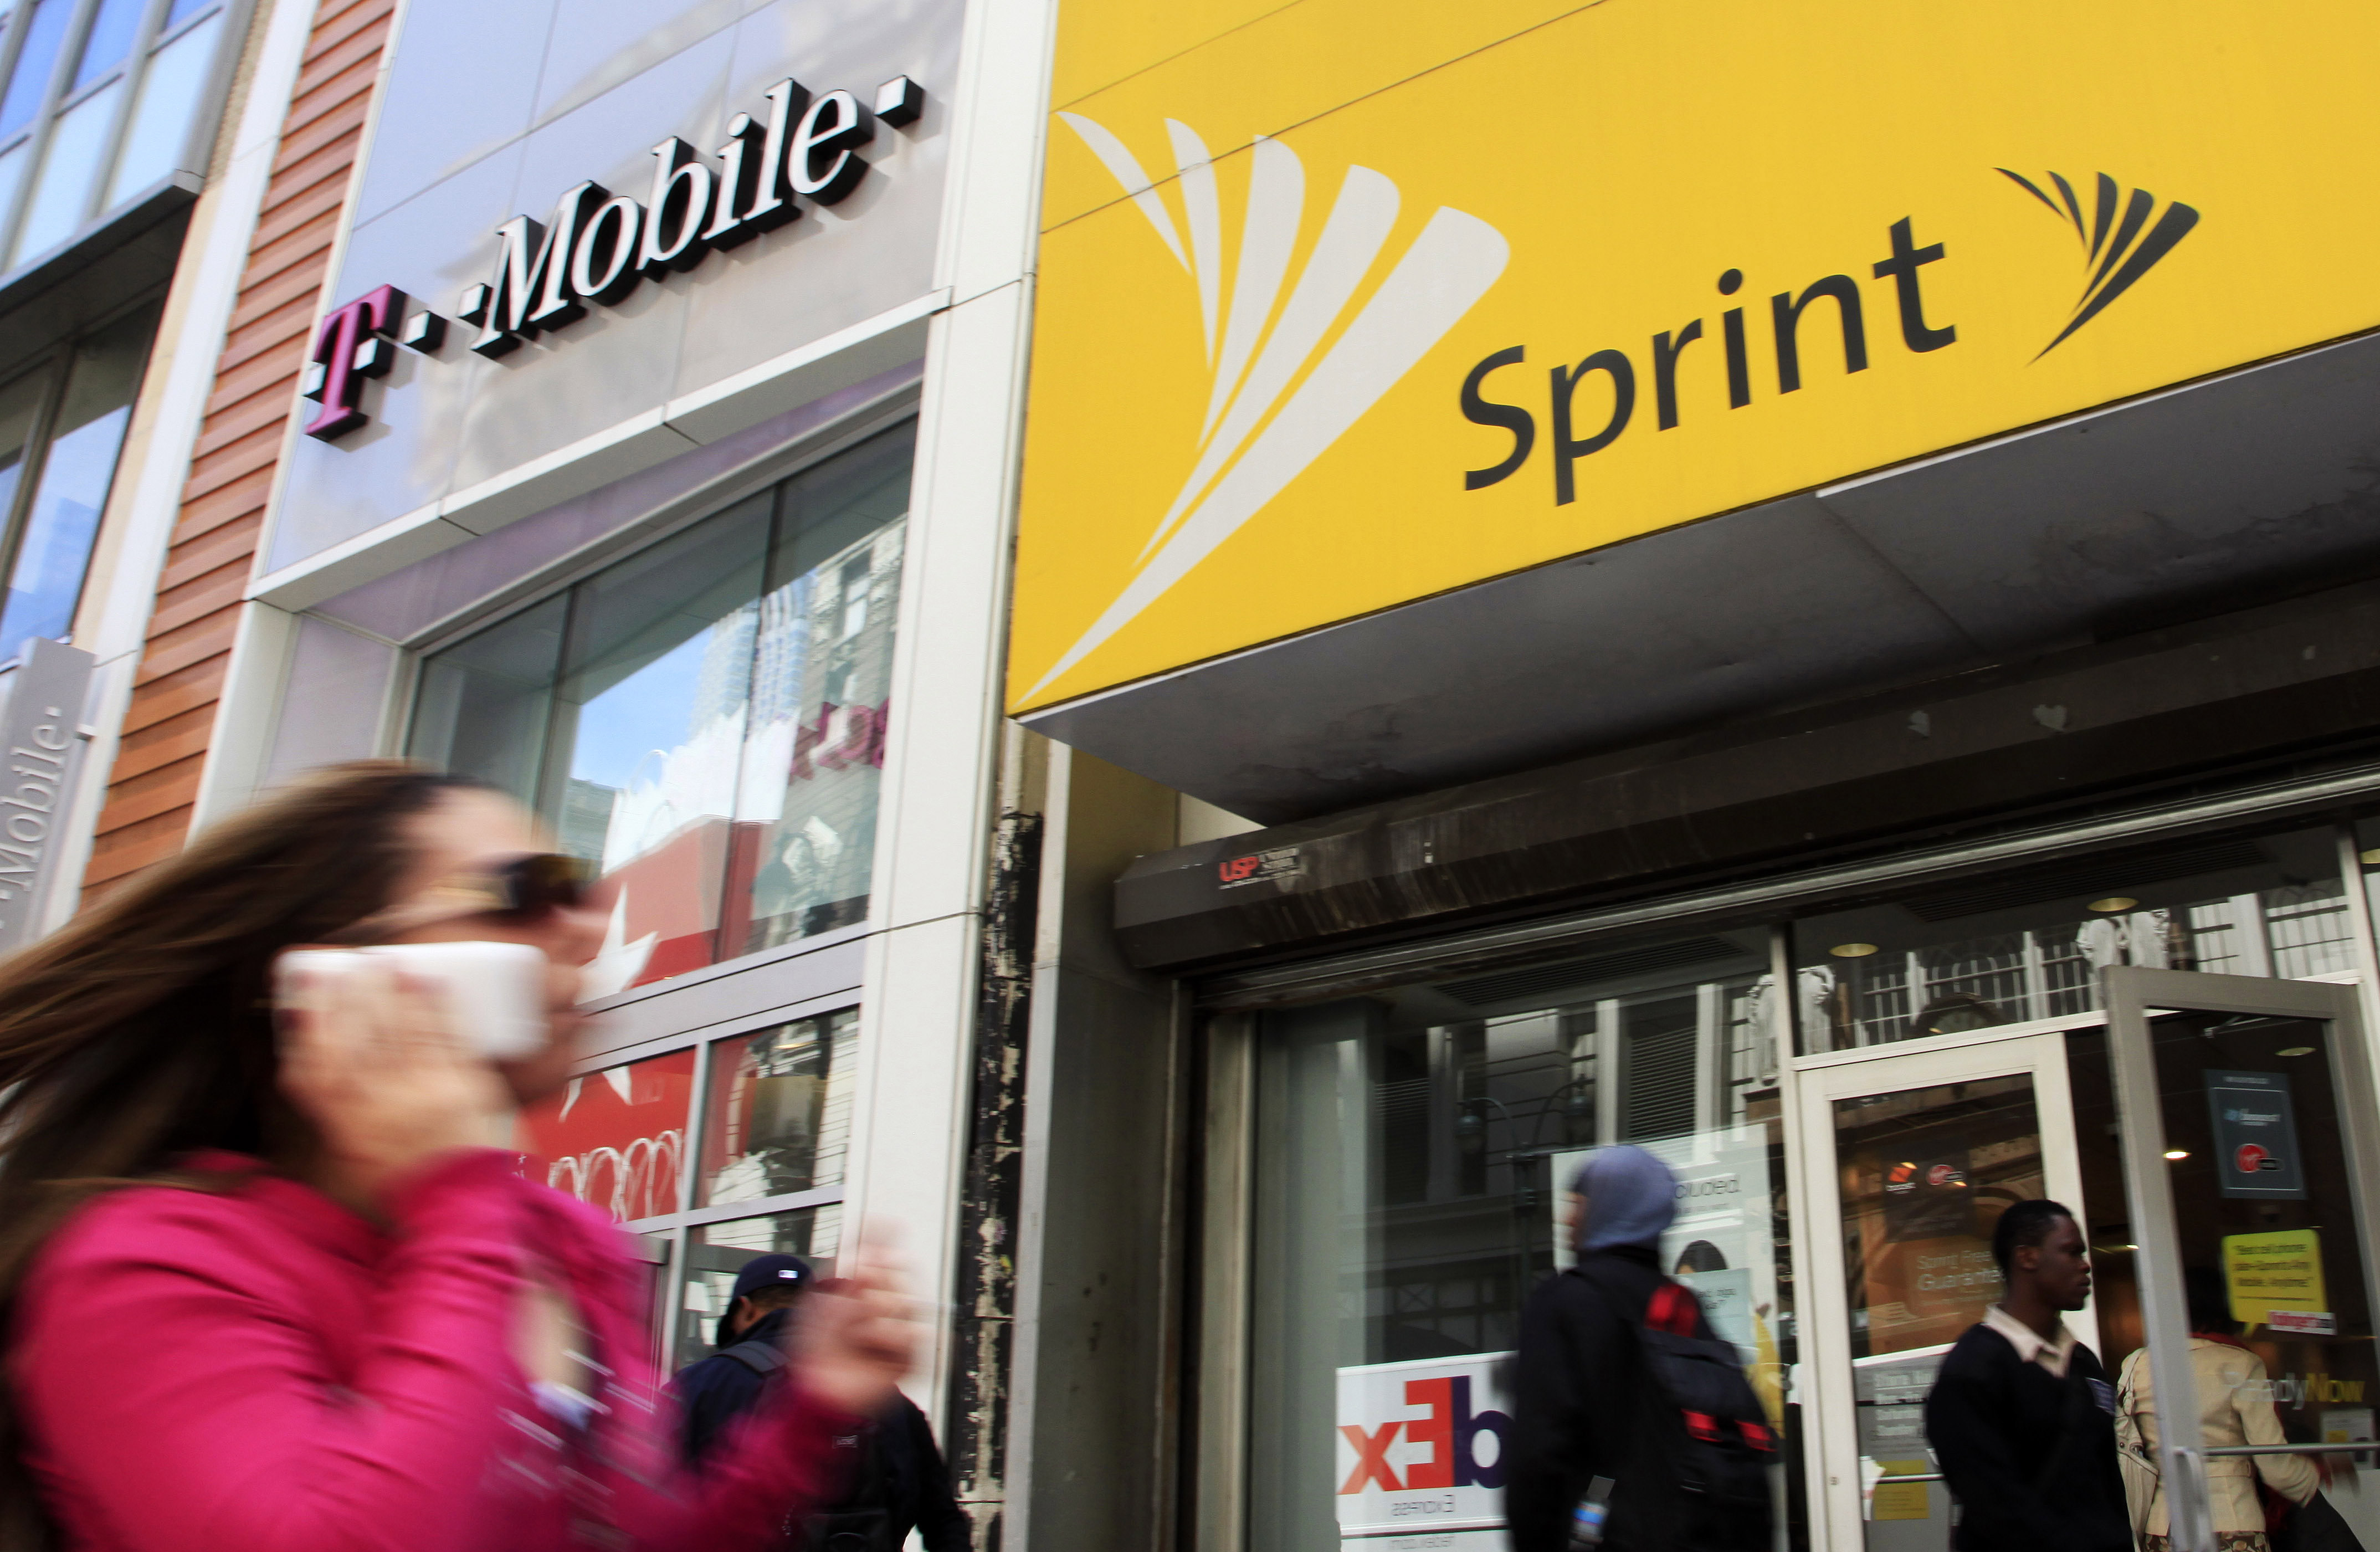 A woman using a cell phone walks past T-Mobile and Sprint stores in New York.